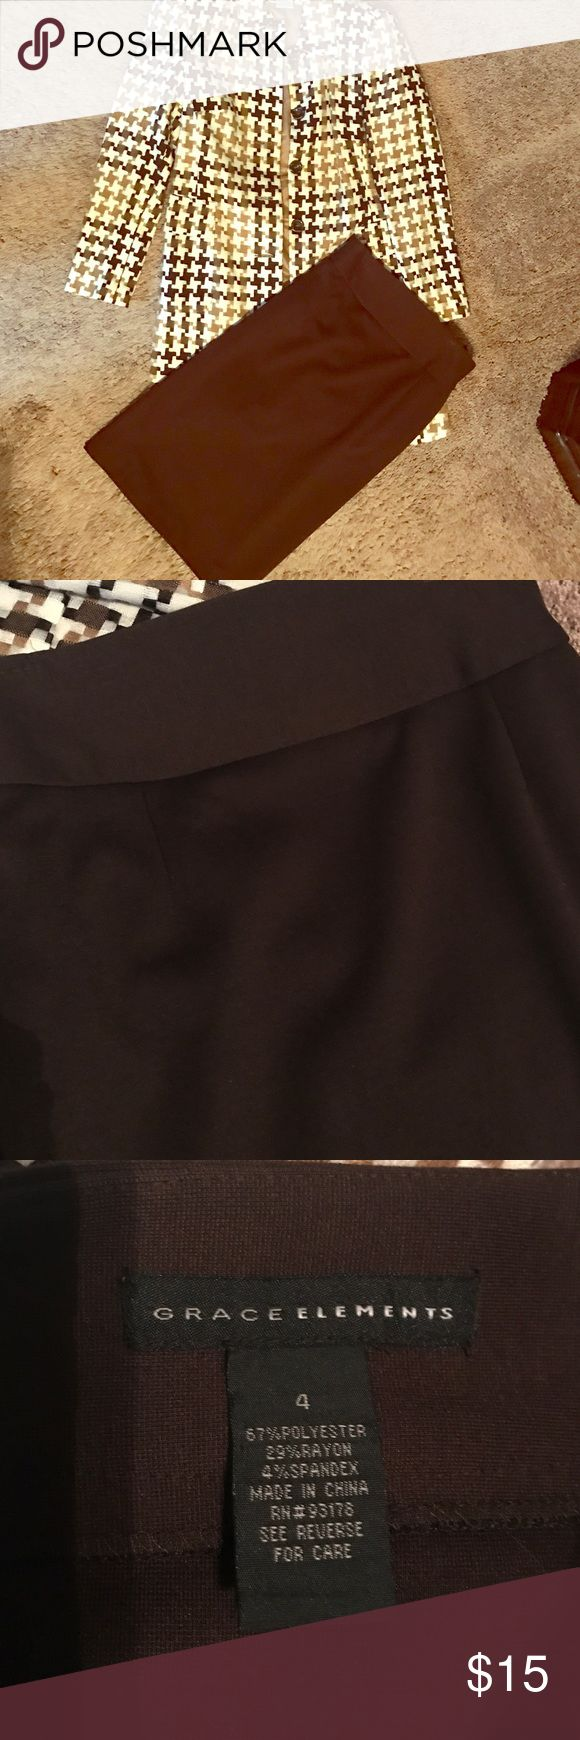 Grace Elements chocolate brown pencil skirt Great wardrobe piece this chocolate pencil skirt goes great paired with a jacket or sweater and some boots. Jacket is in separate listing but makes a great bundle with this skirt Grace Elements Skirts Pencil